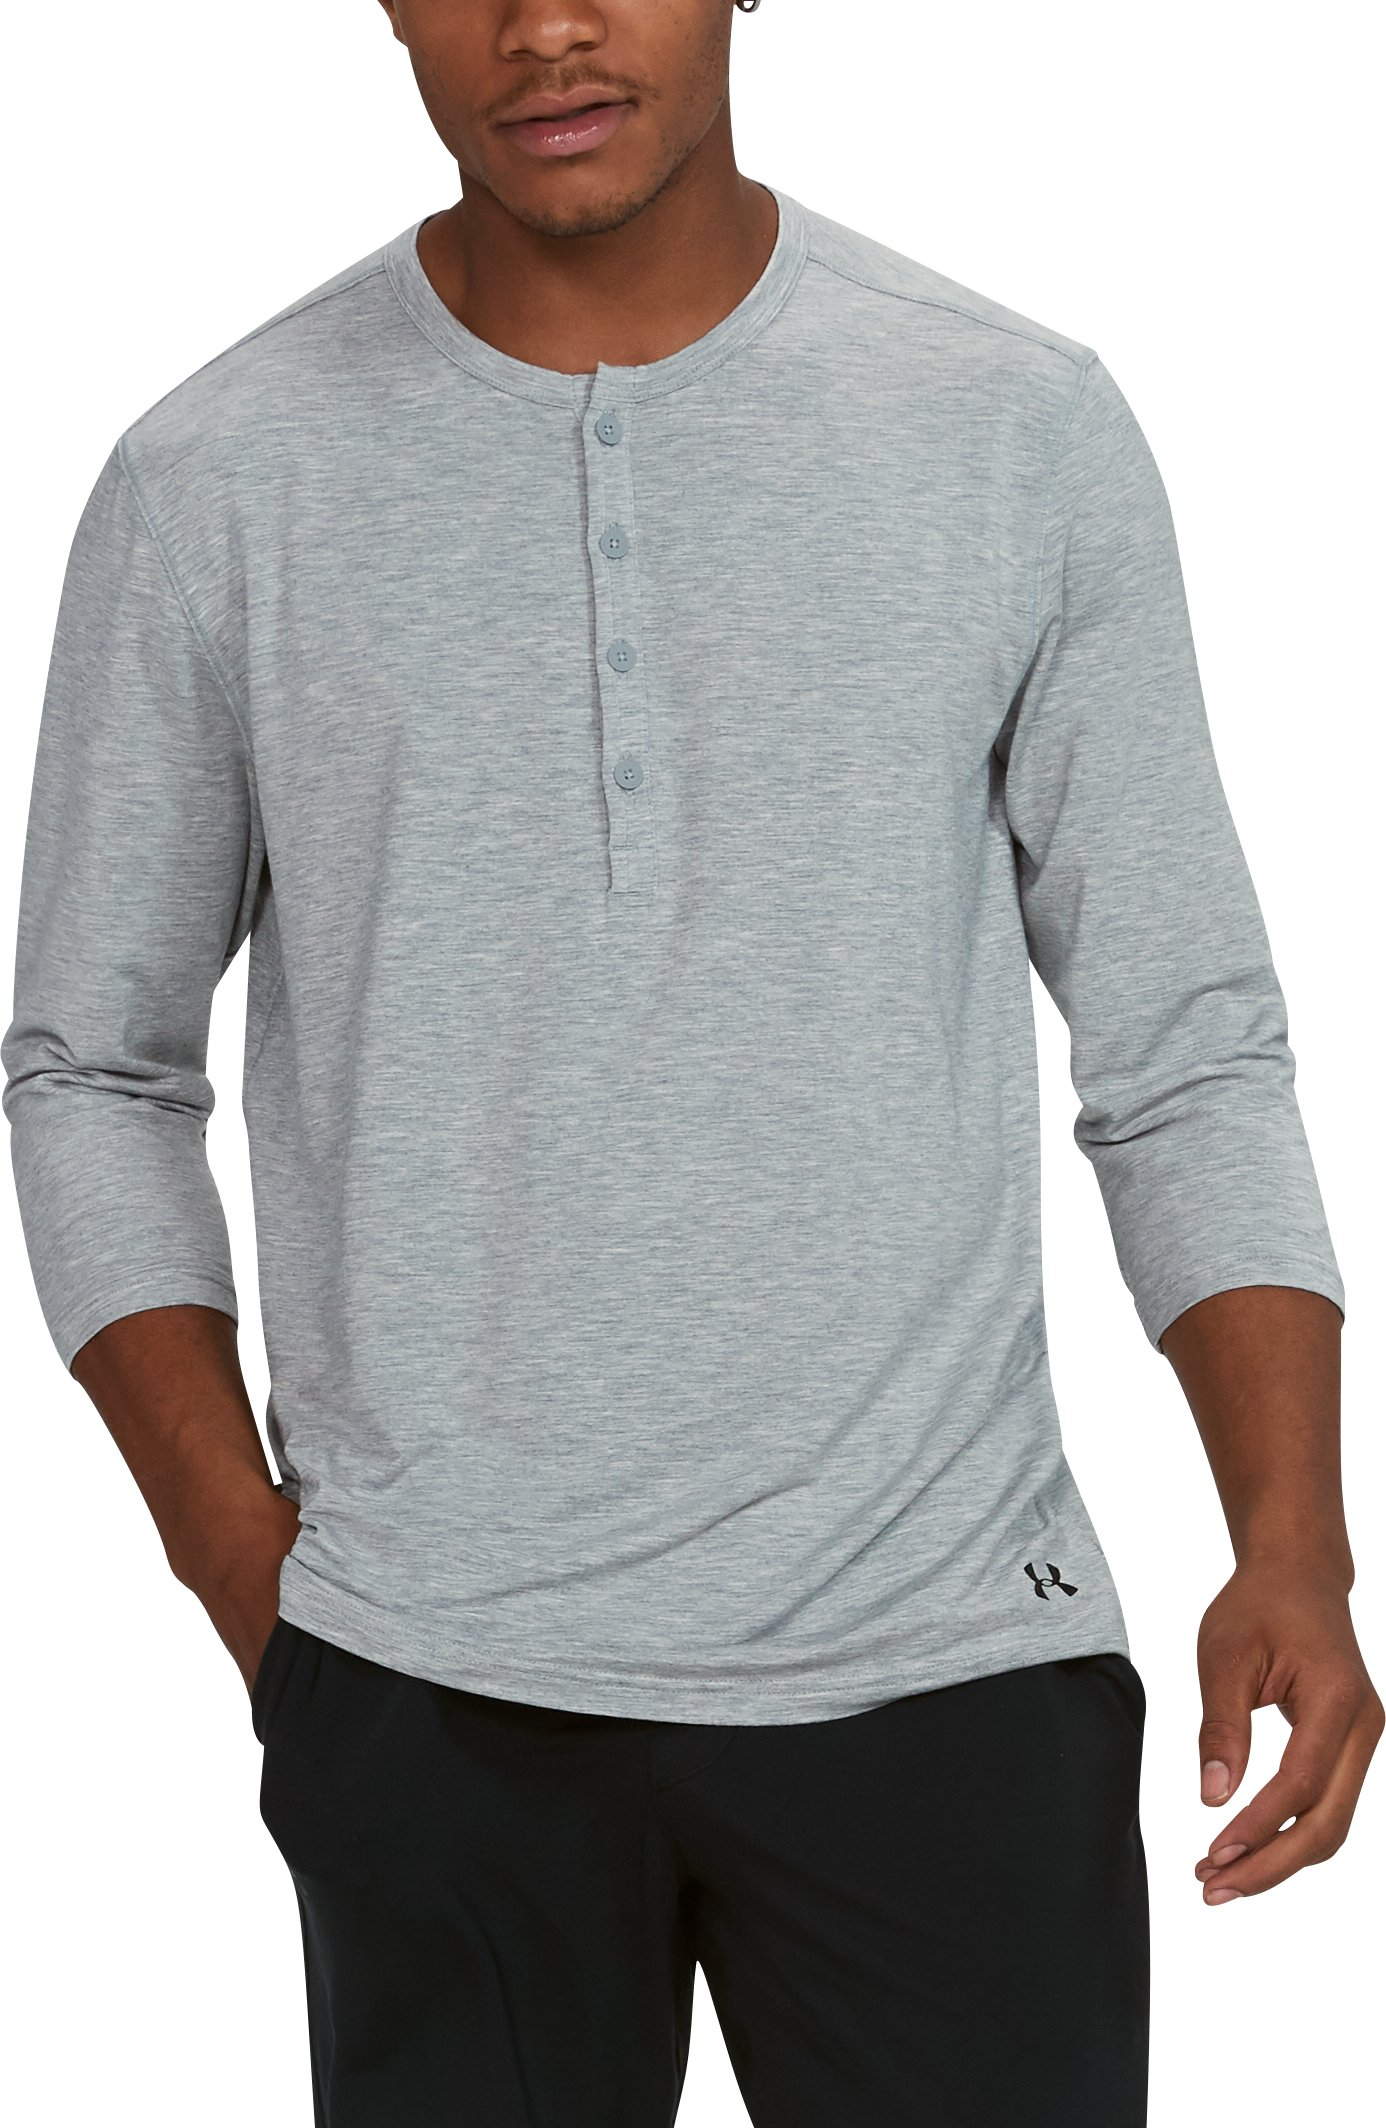 Men's Athlete Recovery Elite Sleepwear Henley, True Gray Heather